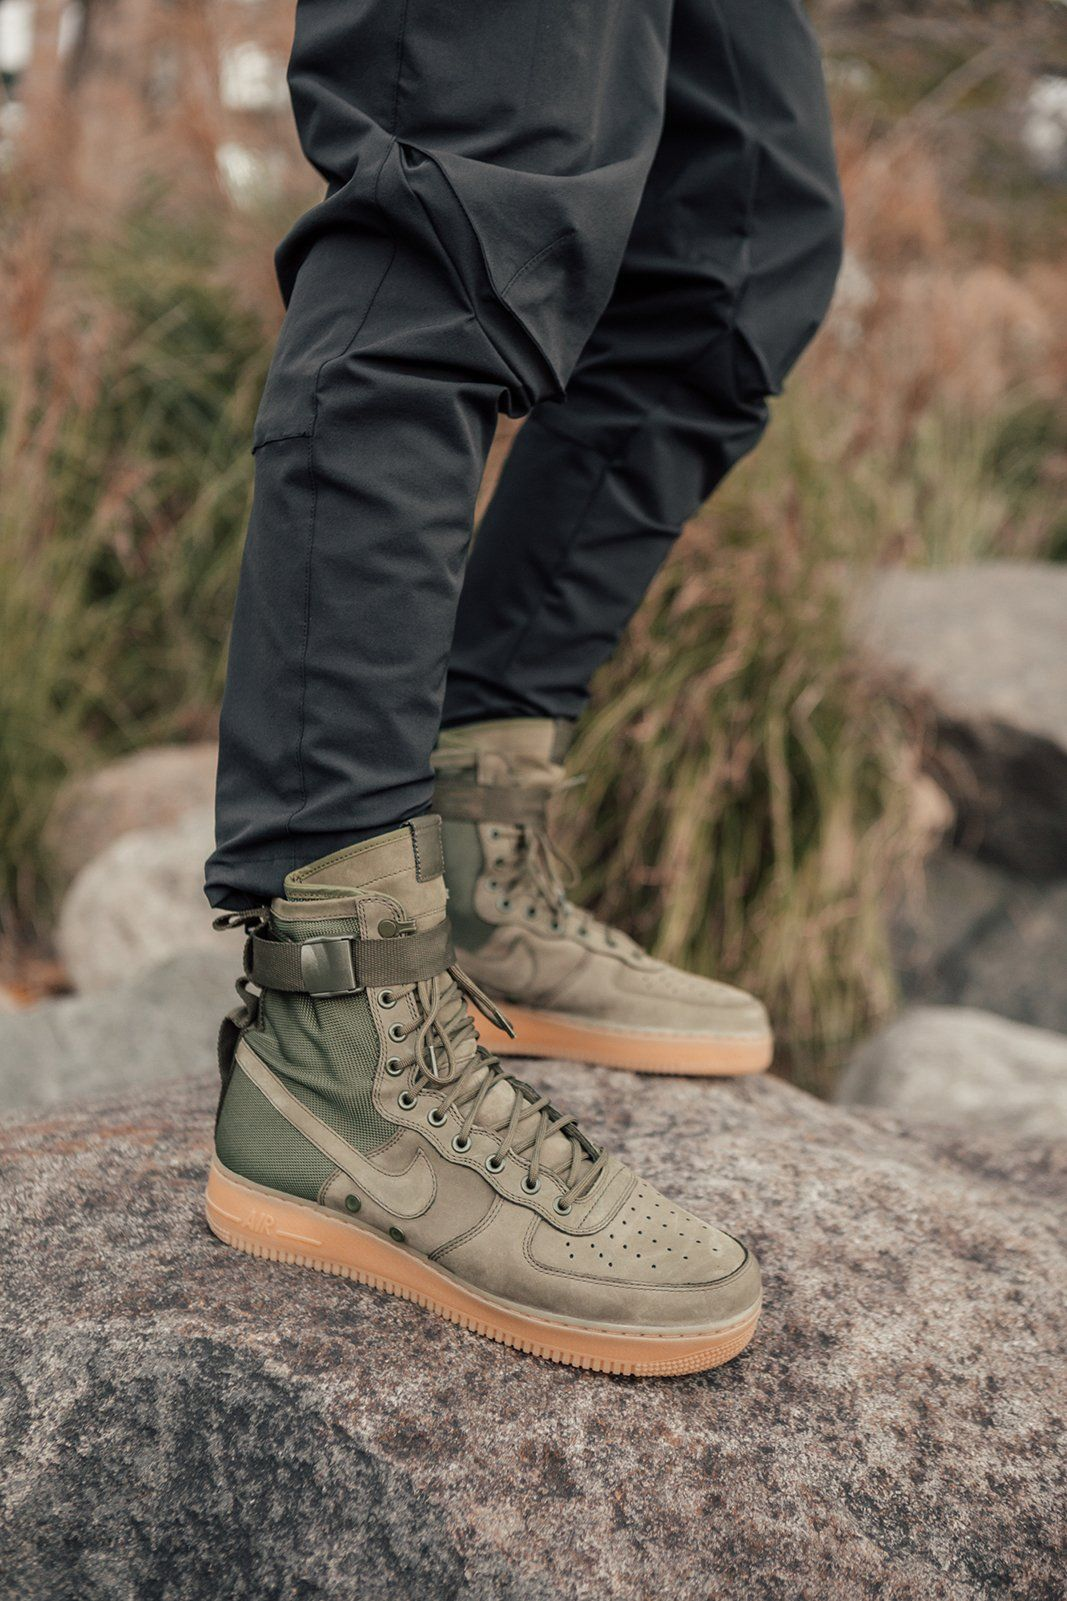 a6fcf1189952df Kith partners with Nike to shoot an editorial to launch the all-new SF AF-1  collection. The Air Force 1 s classic design has been the foundation for a  ...